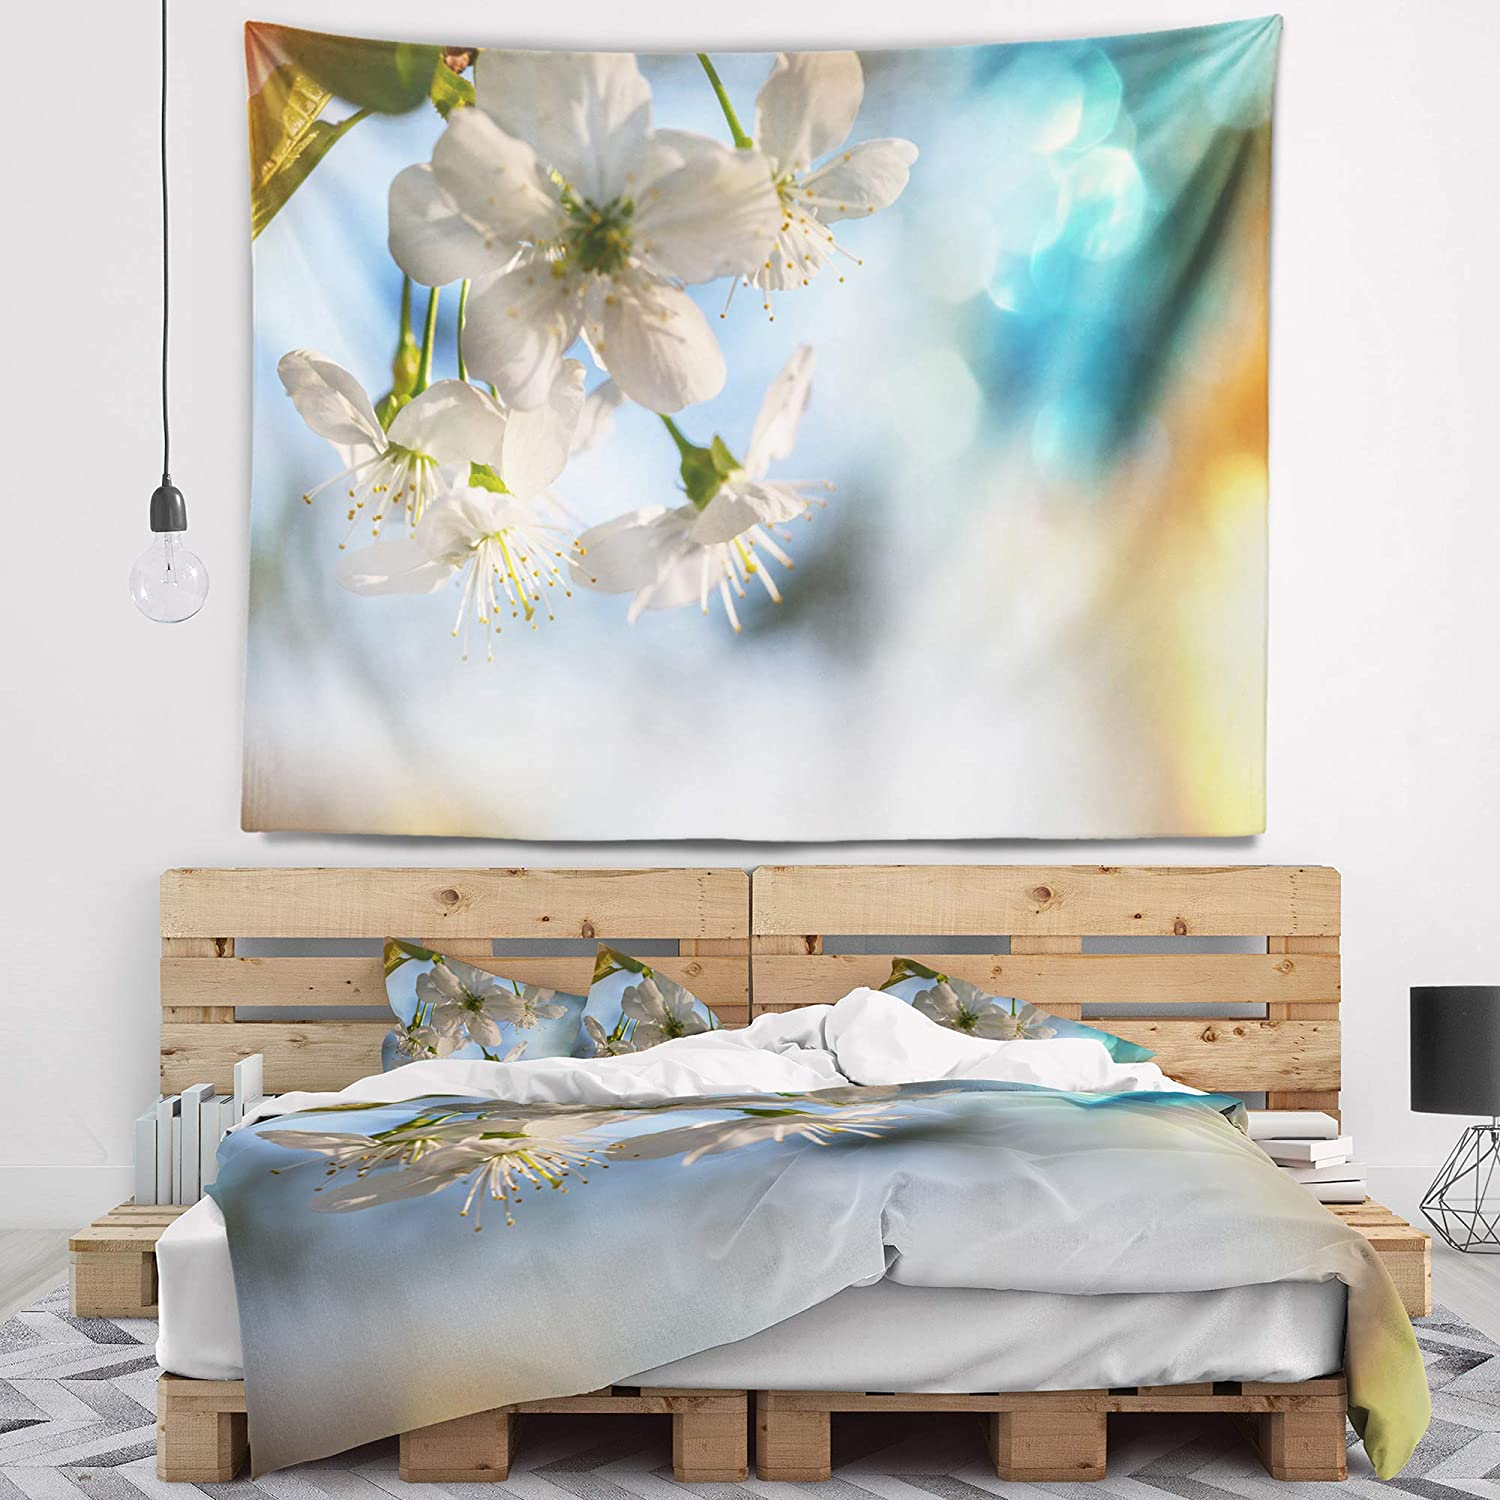 Designart TAP12425-60-50  White Blossoming Cherry Tree Floral Blanket D/écor Art for Home and Office Wall Tapestry Large 60 x 50